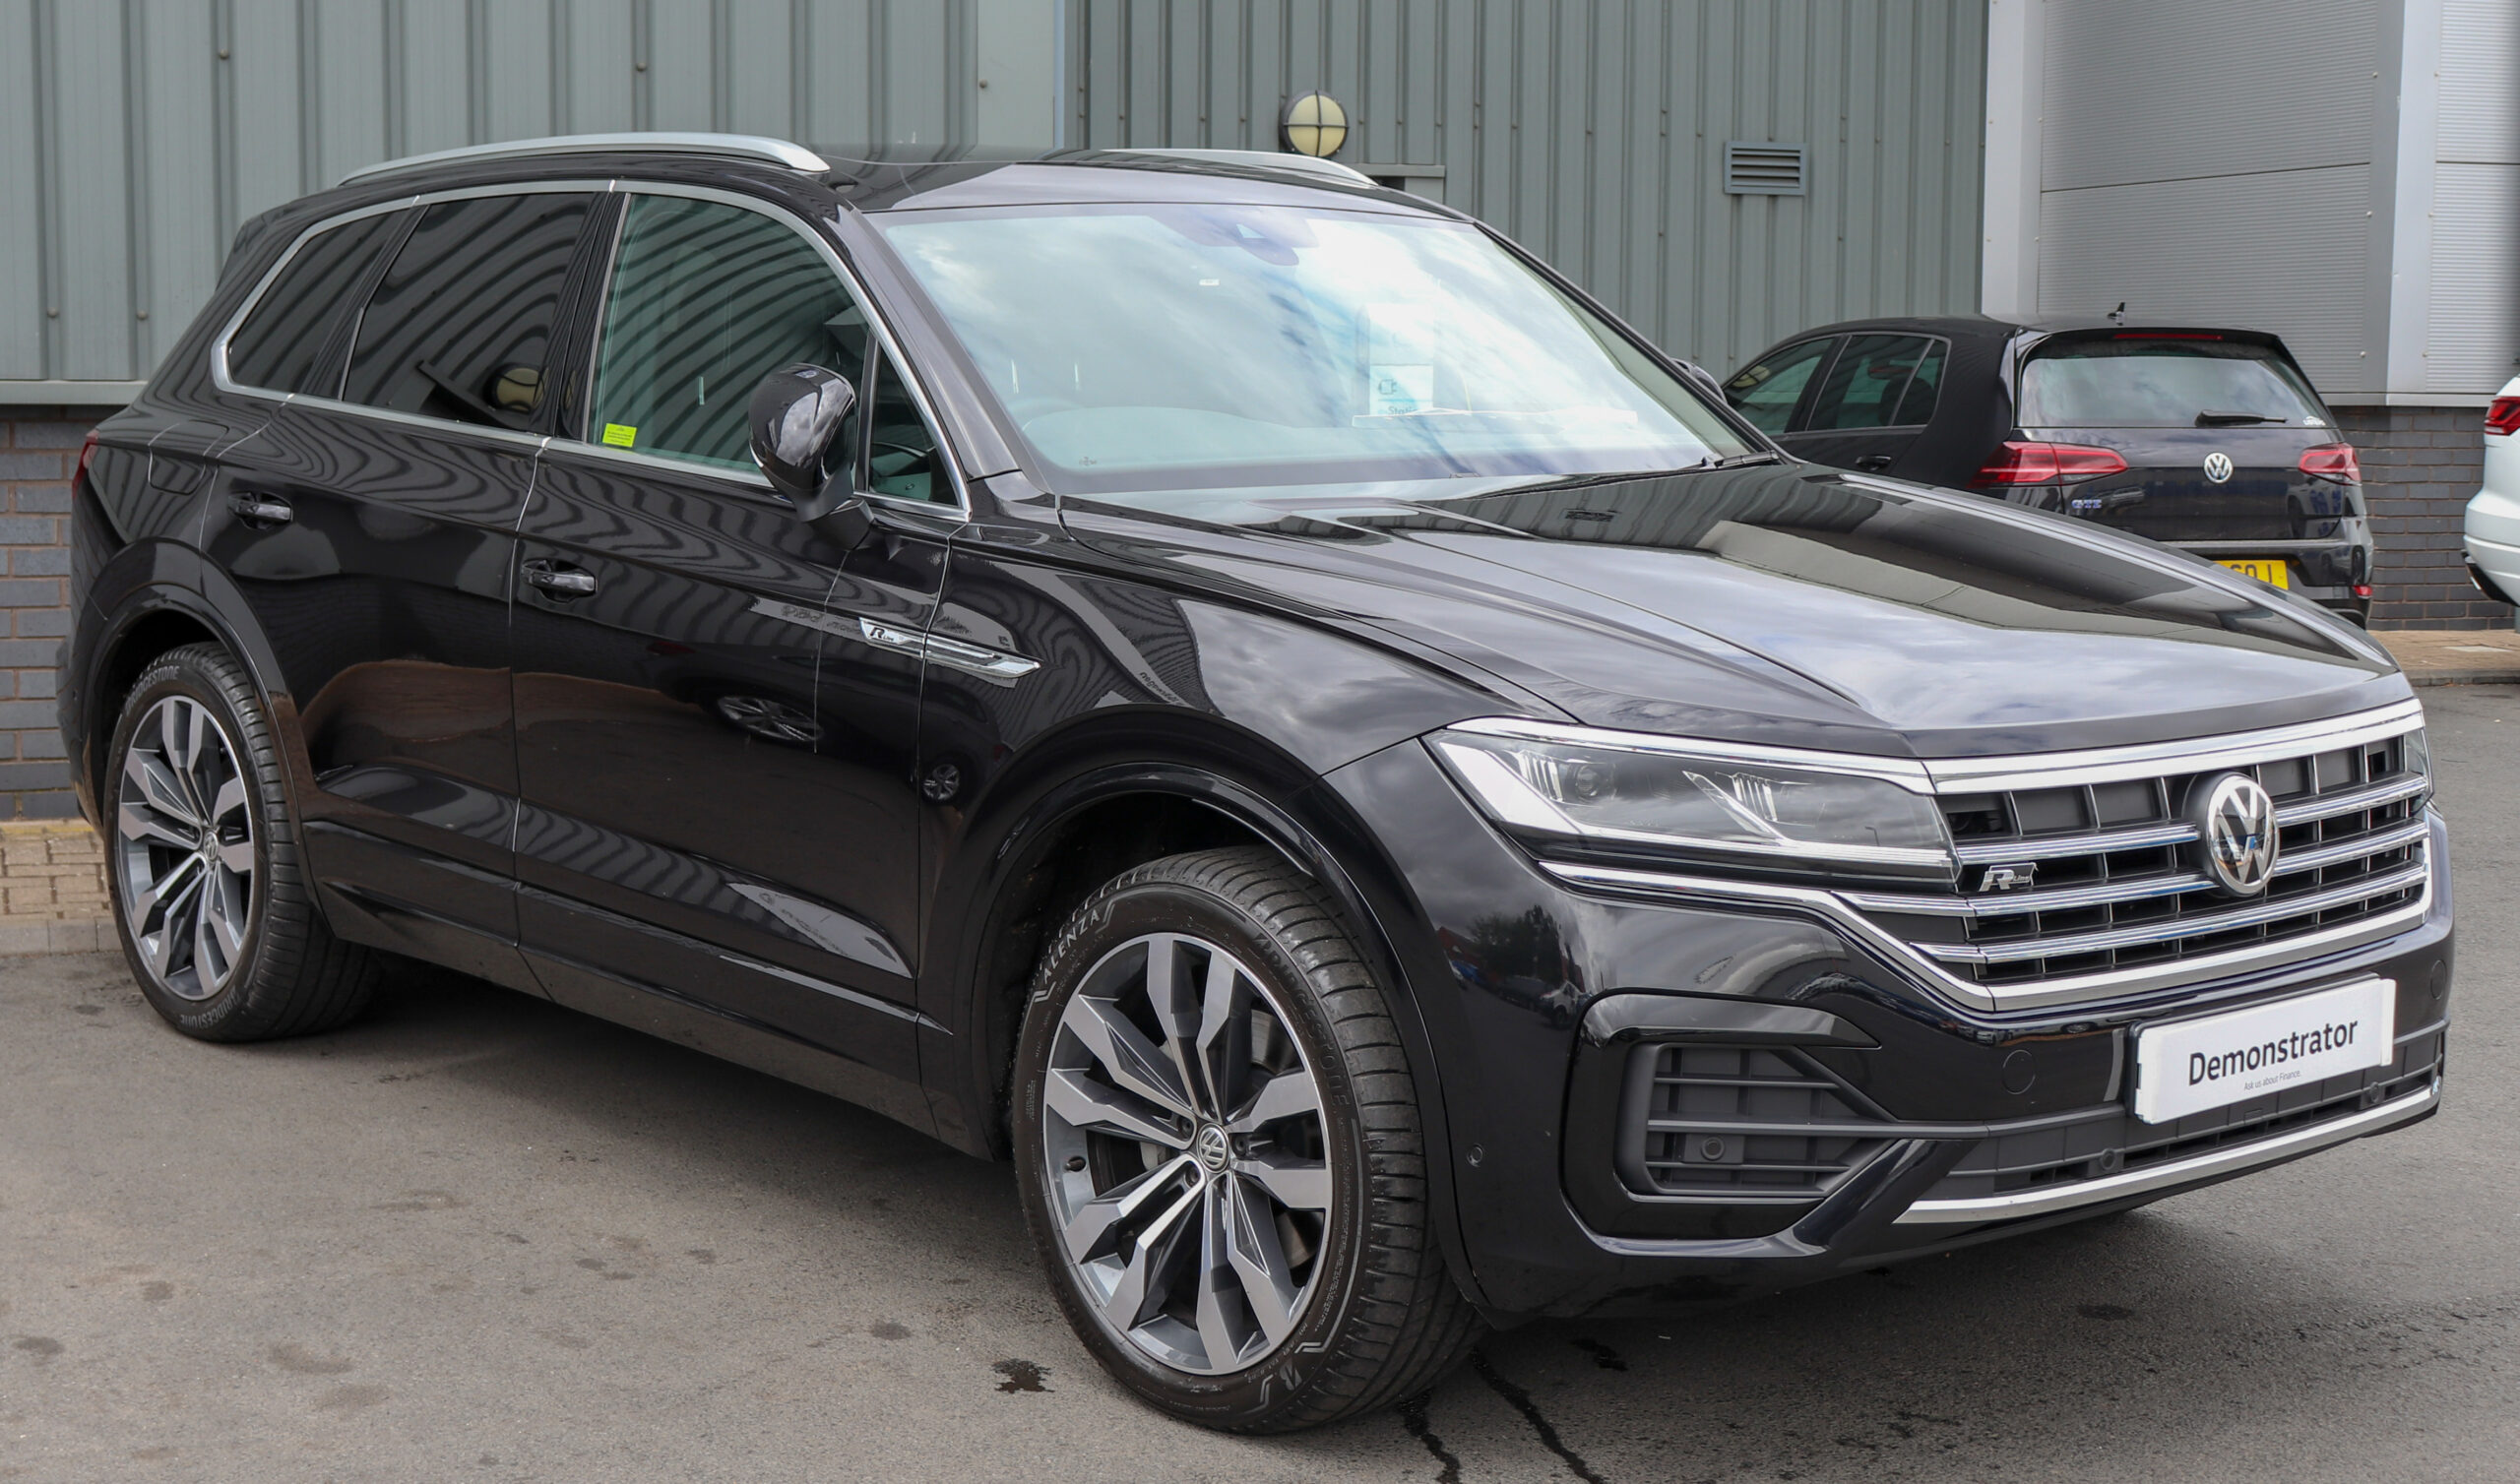 Redesign and Concept 2022 Volkswagen Touareg